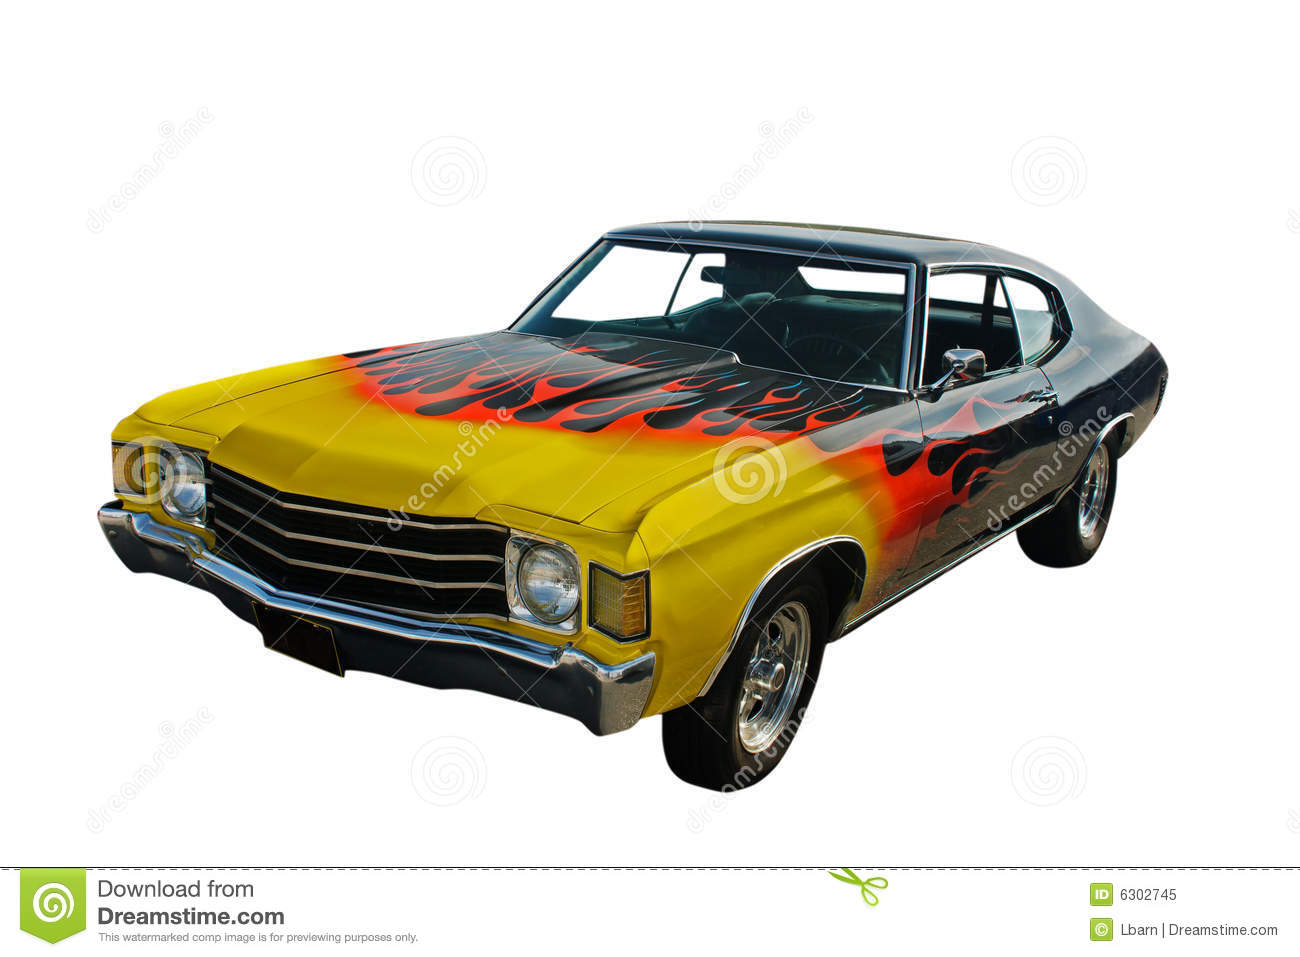 Yellow red flames hotrod stock image. Image of retro, flames - 6302745